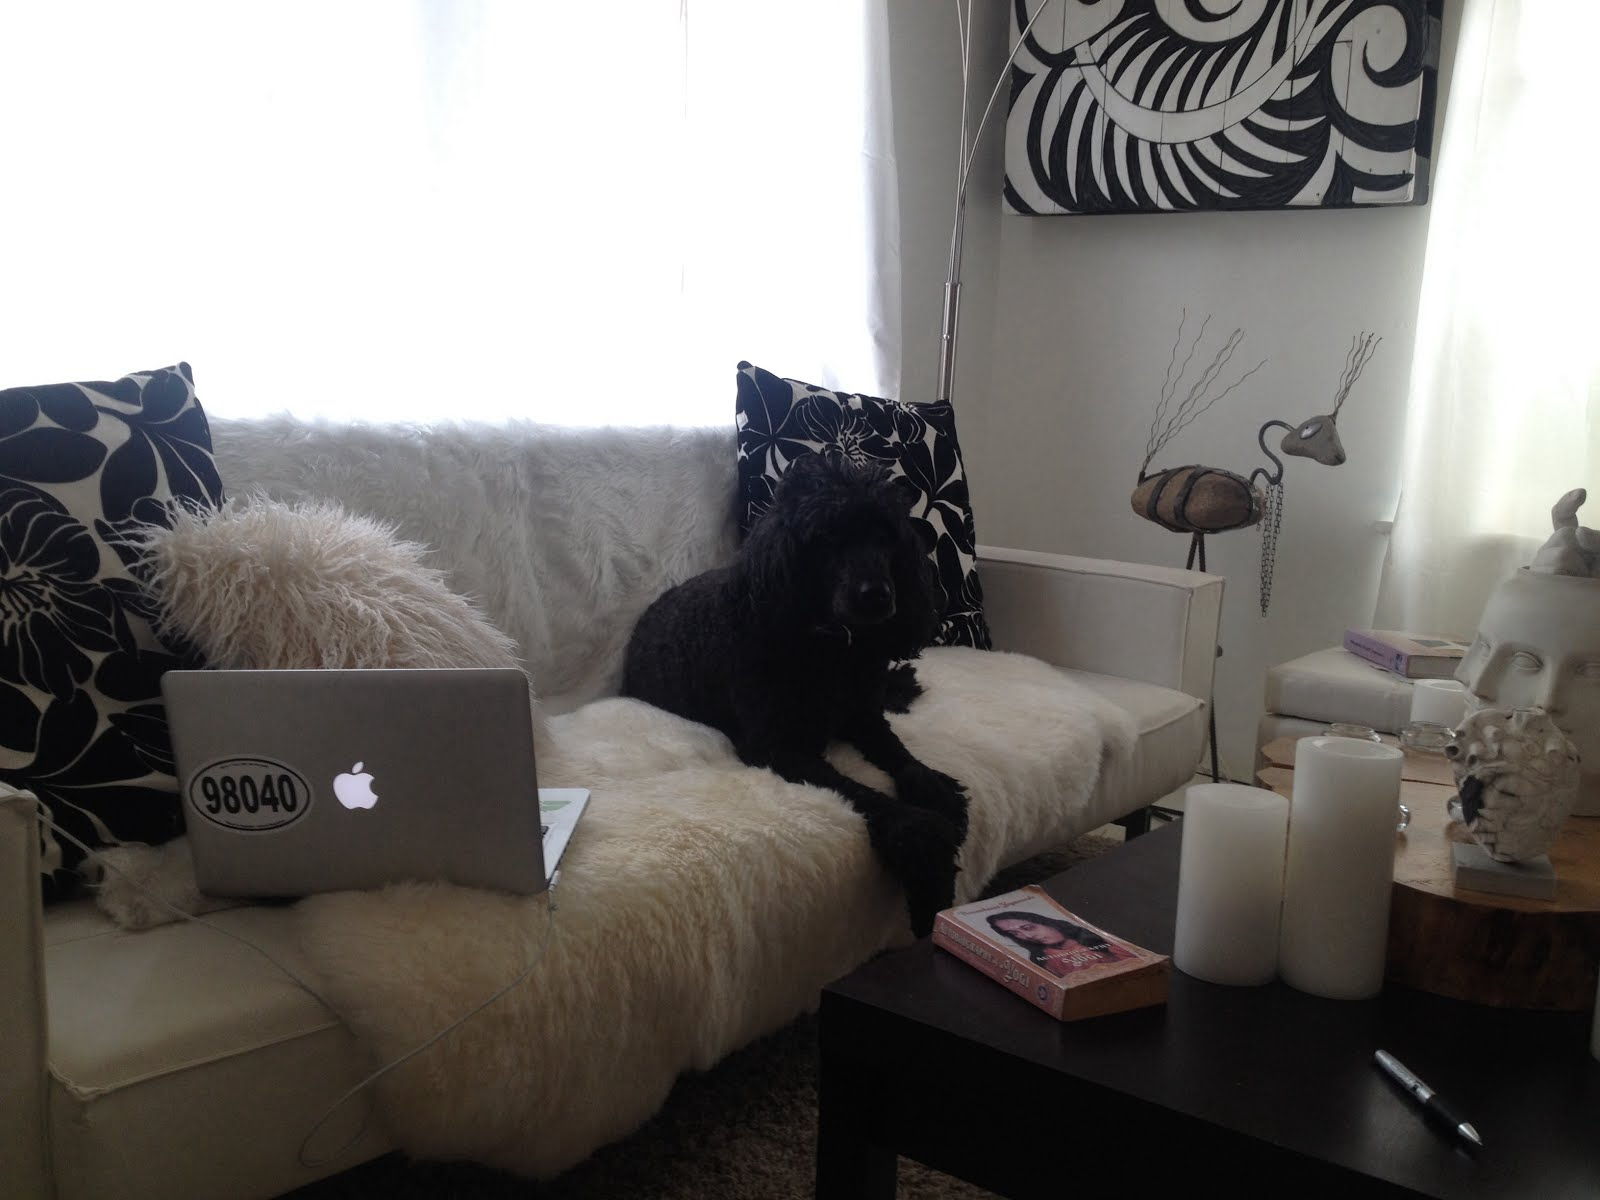 Poodle on a sofa... Checking emails